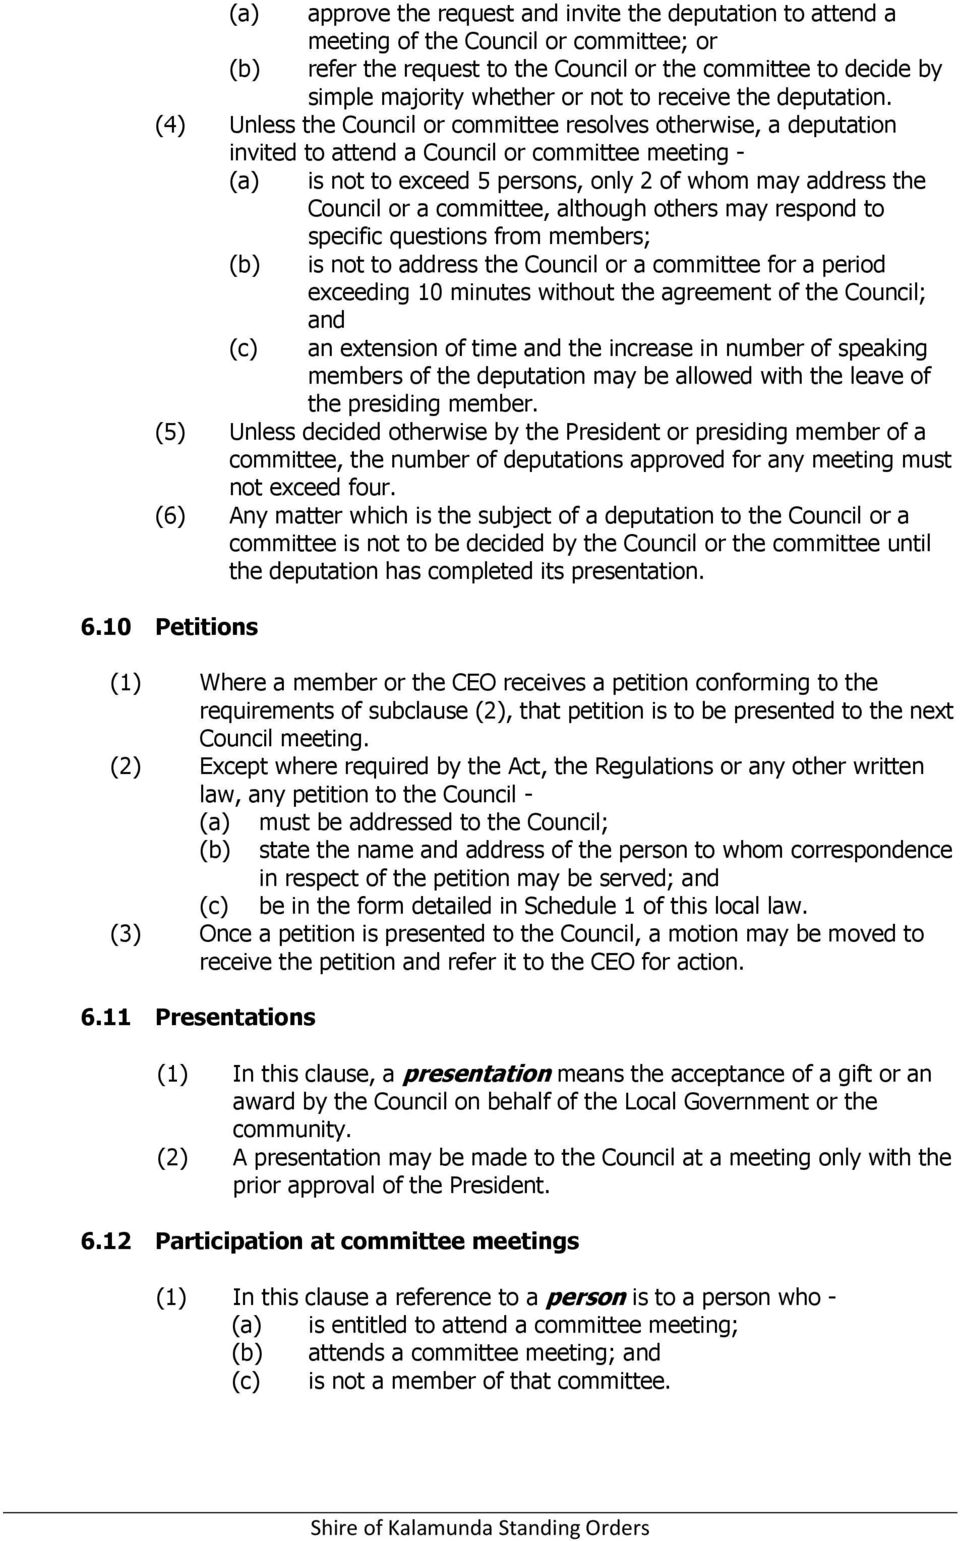 (4) Unless the Council or committee resolves otherwise, a deputation invited to attend a Council or committee meeting - (a) is not to exceed 5 persons, only 2 of whom may address the Council or a